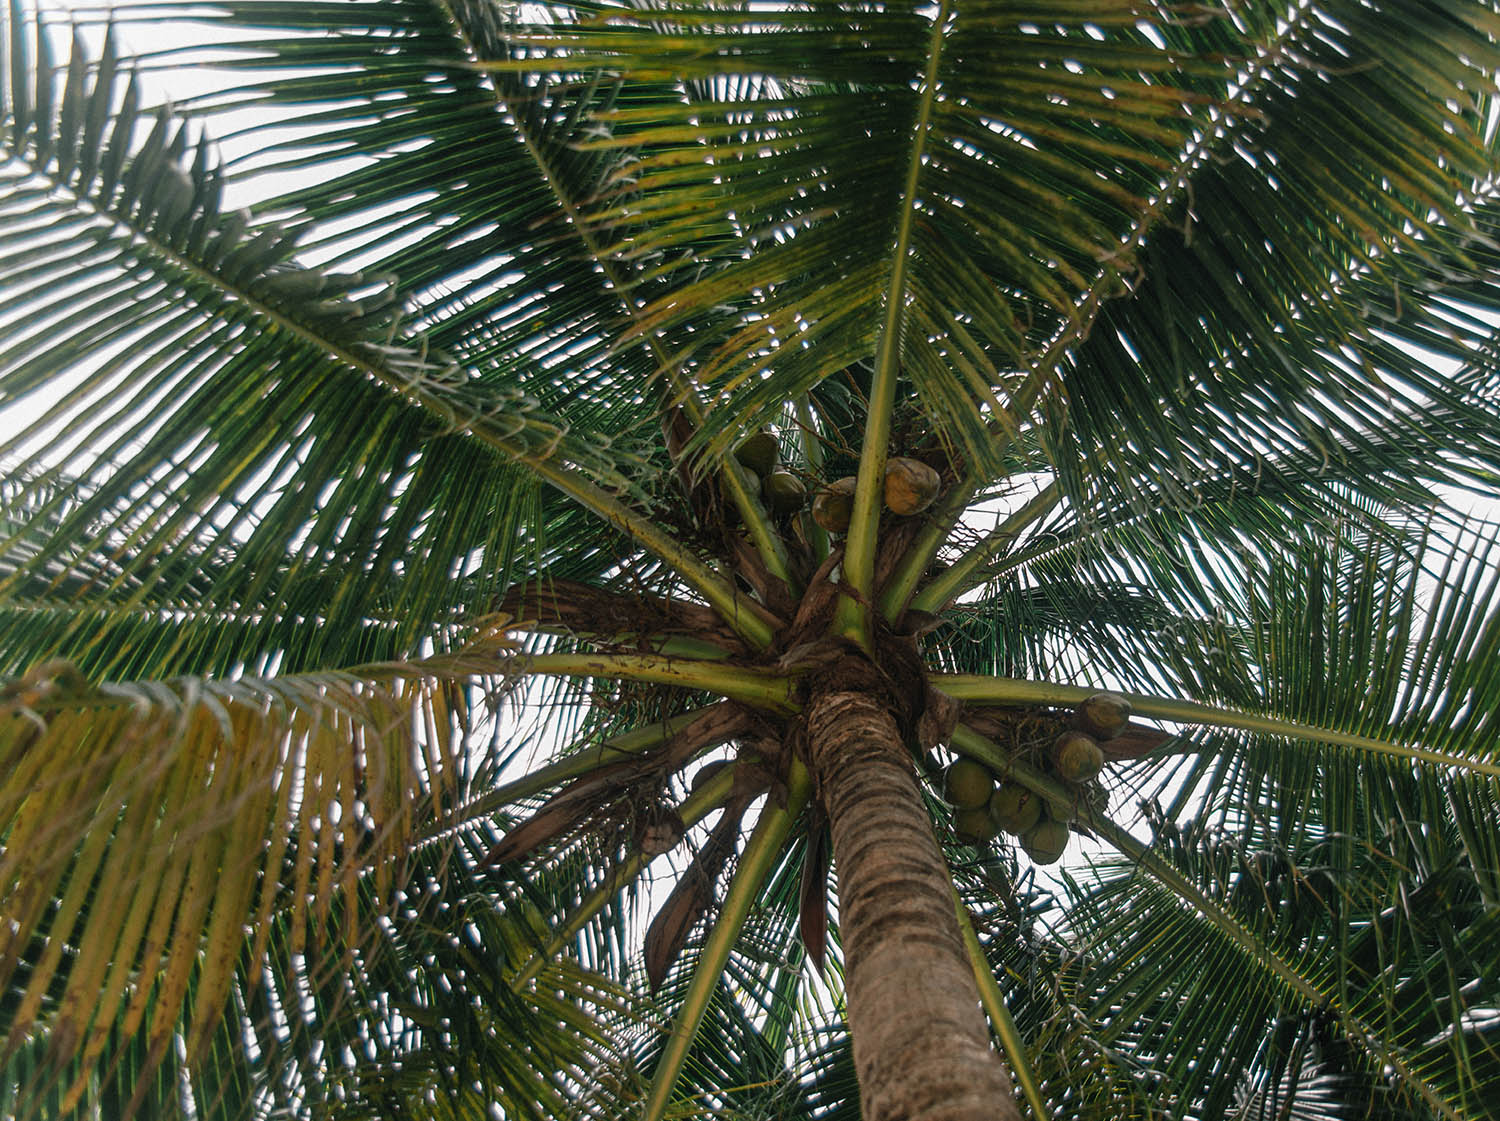 Close-up on palm trees